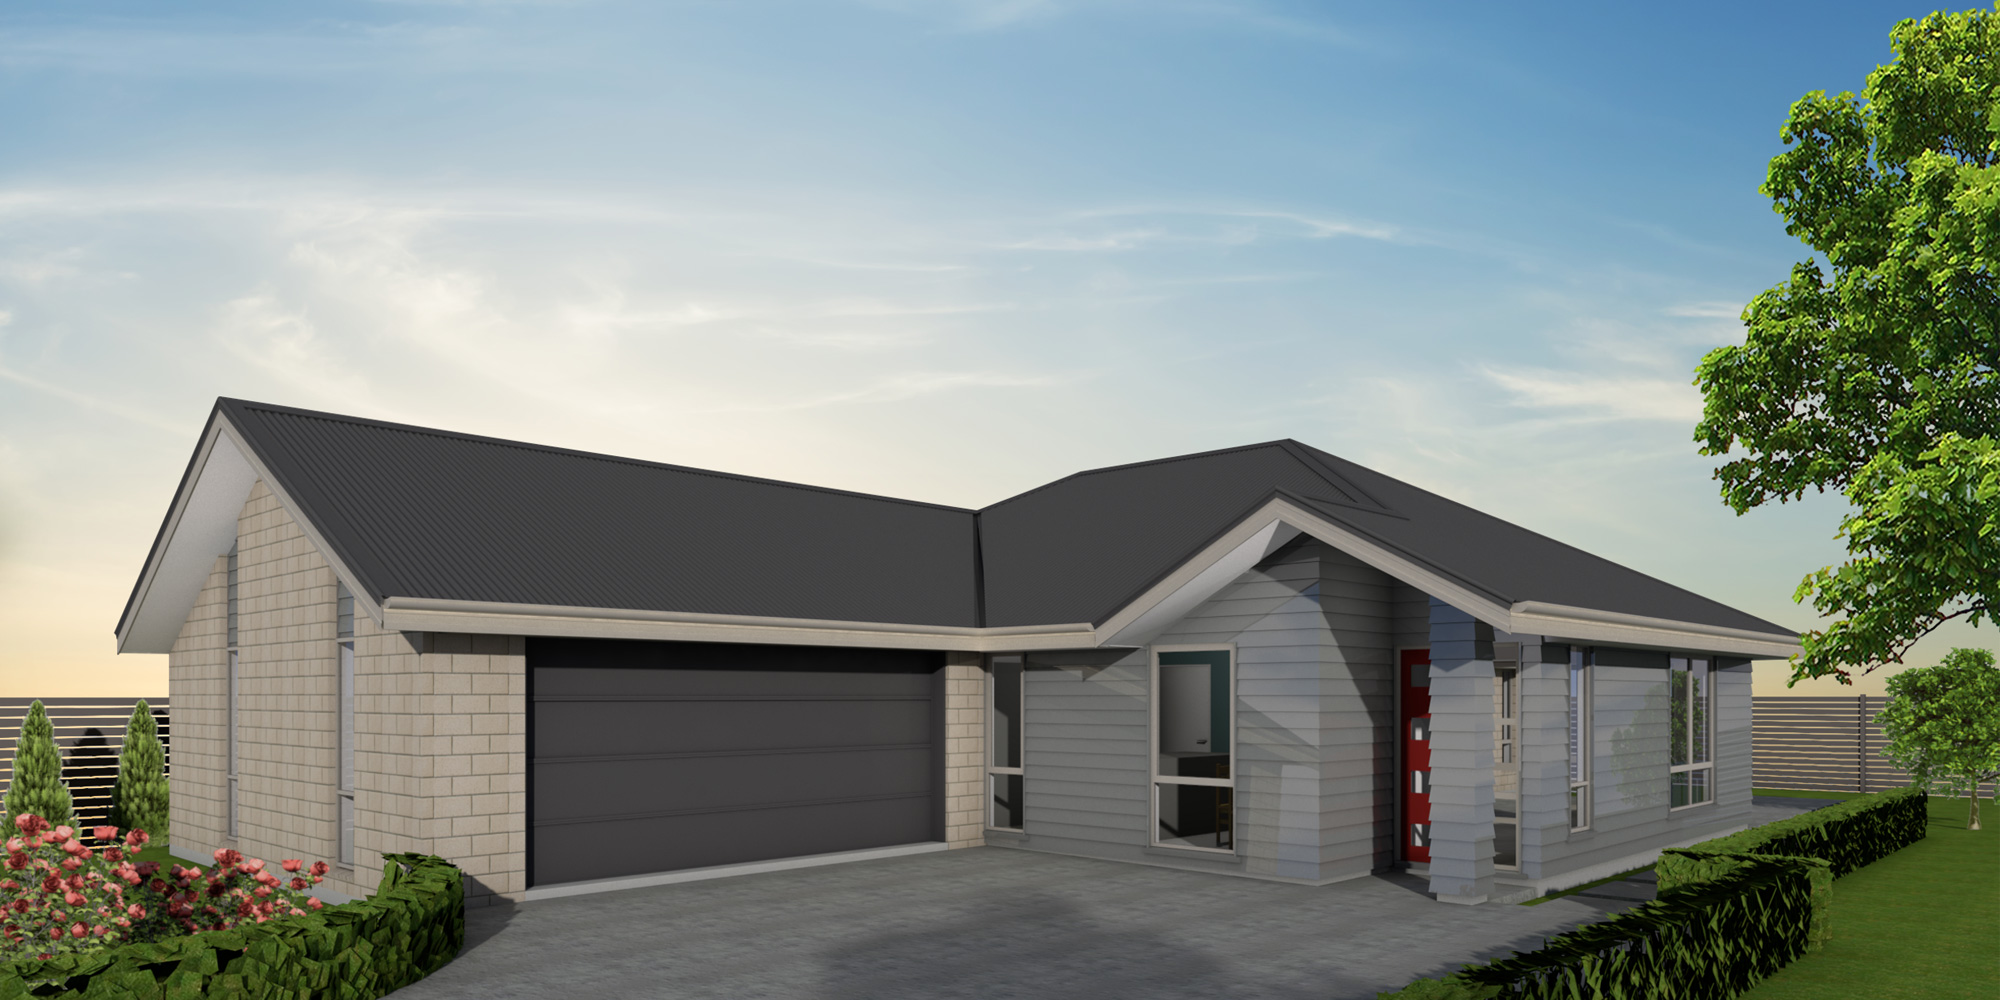 - You will feel right at home in the Preston when you walk through the entranceway into the large free-flowing living areas. The generous walk-in wardrobe spanning the width of the master bedroom is sure to delight lovers of fashion.